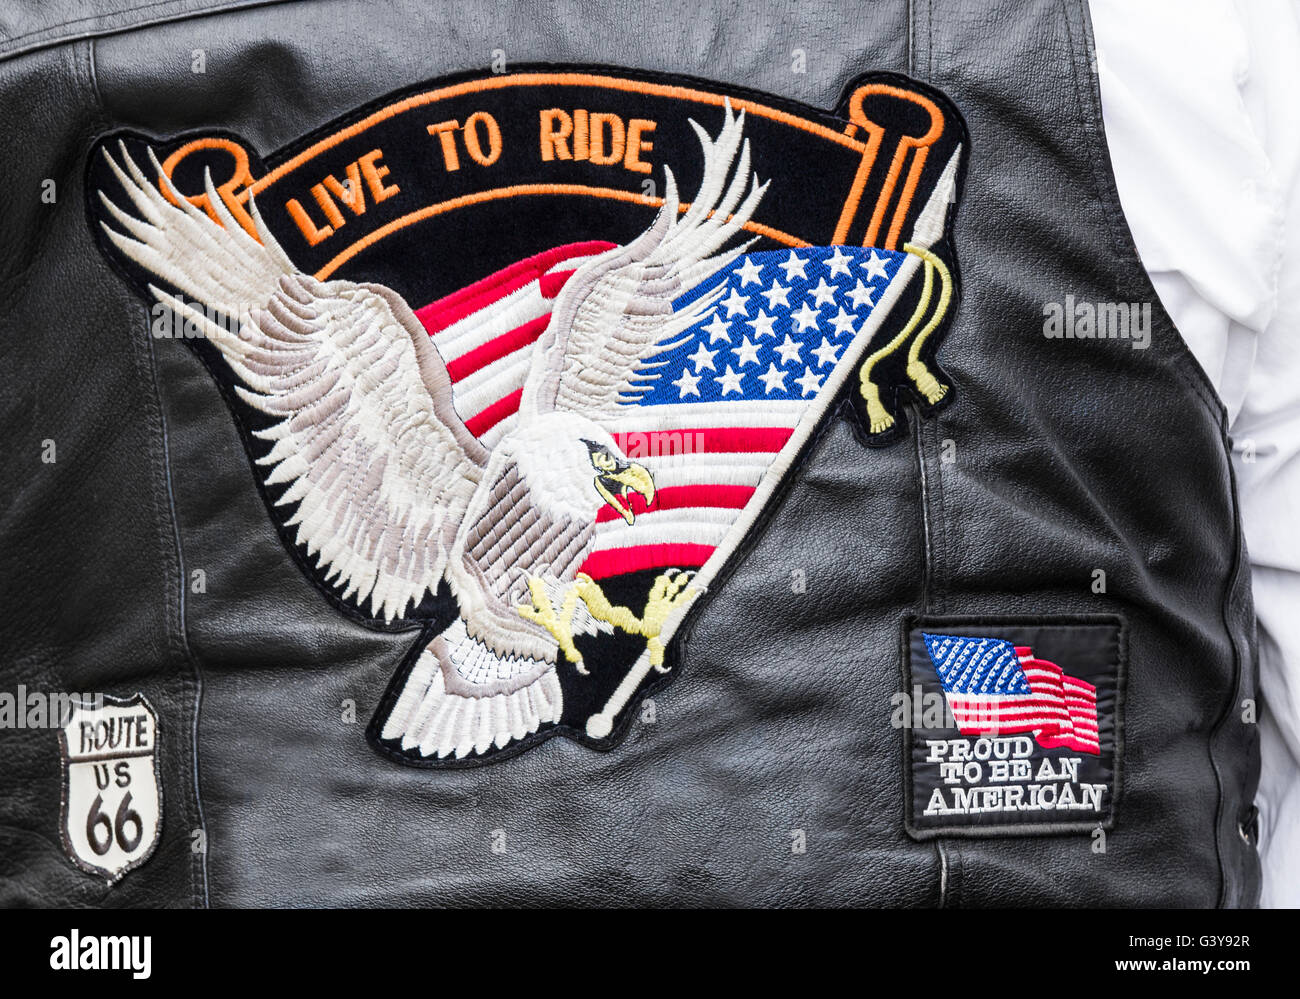 Biker wearing 'Live to ride', 'proud to be an American' and 'Route 66' badges on back of - Stock Image